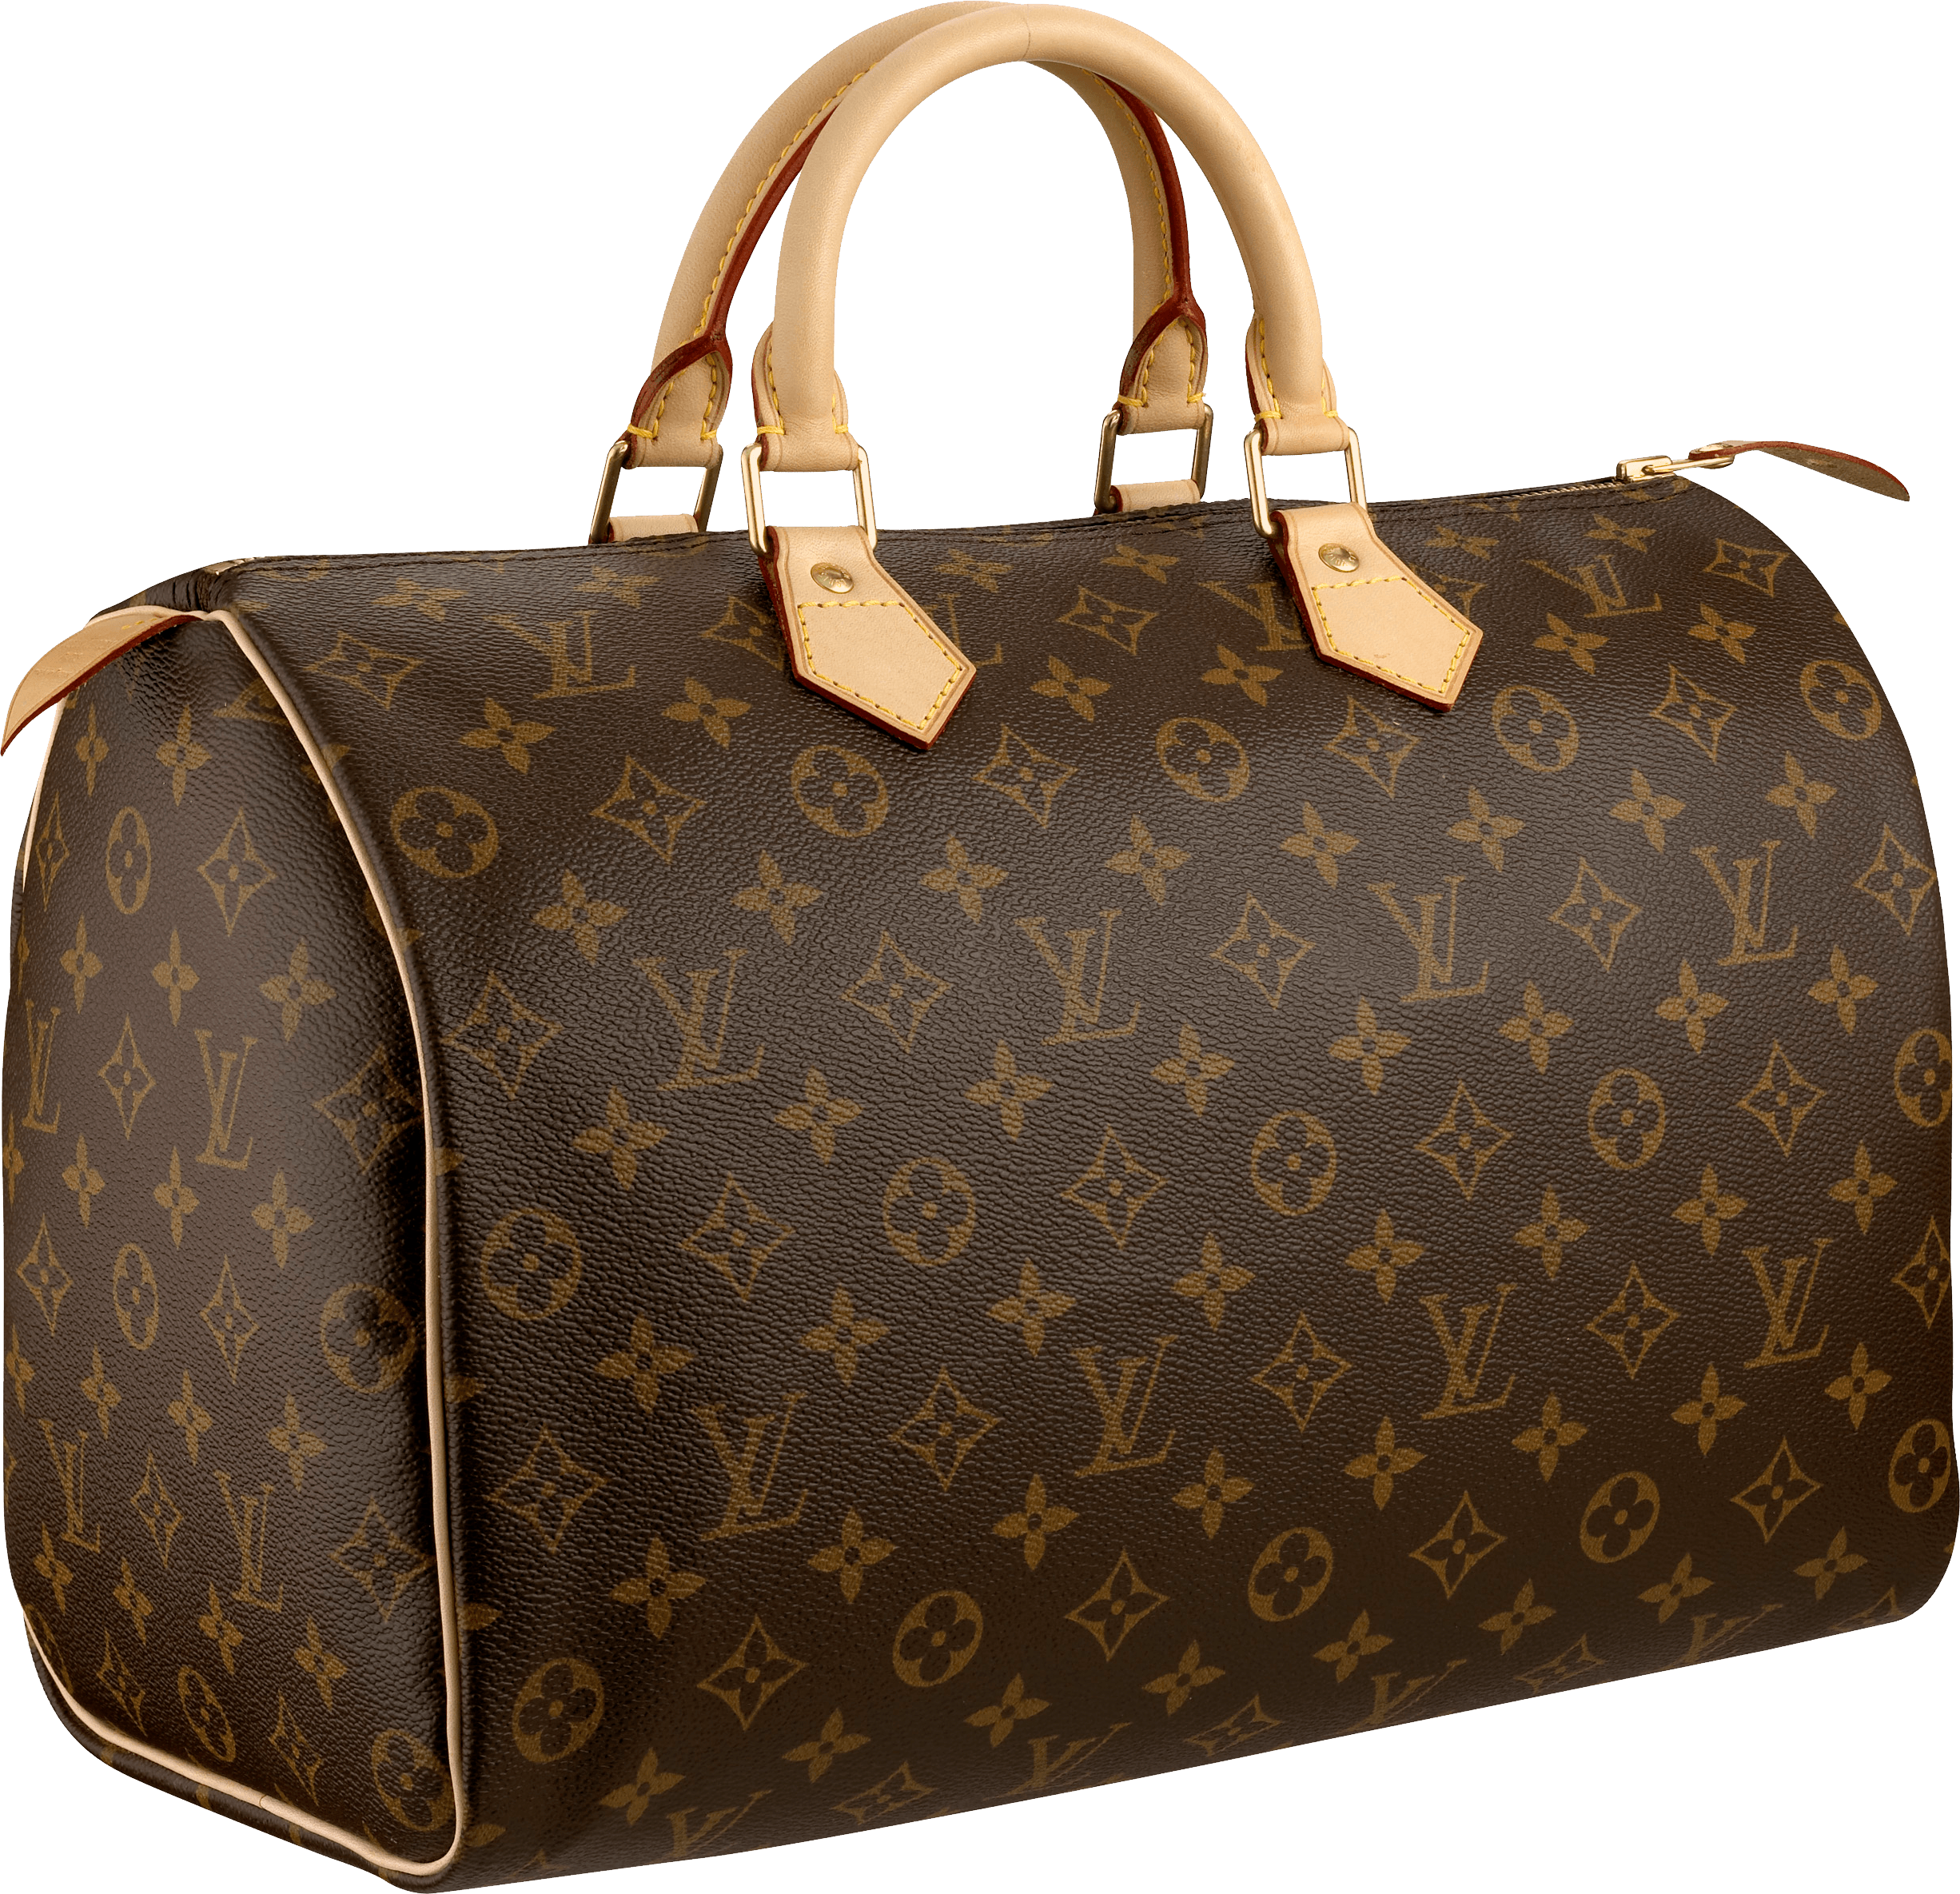 download louis vuitton women bag png image png image #21067